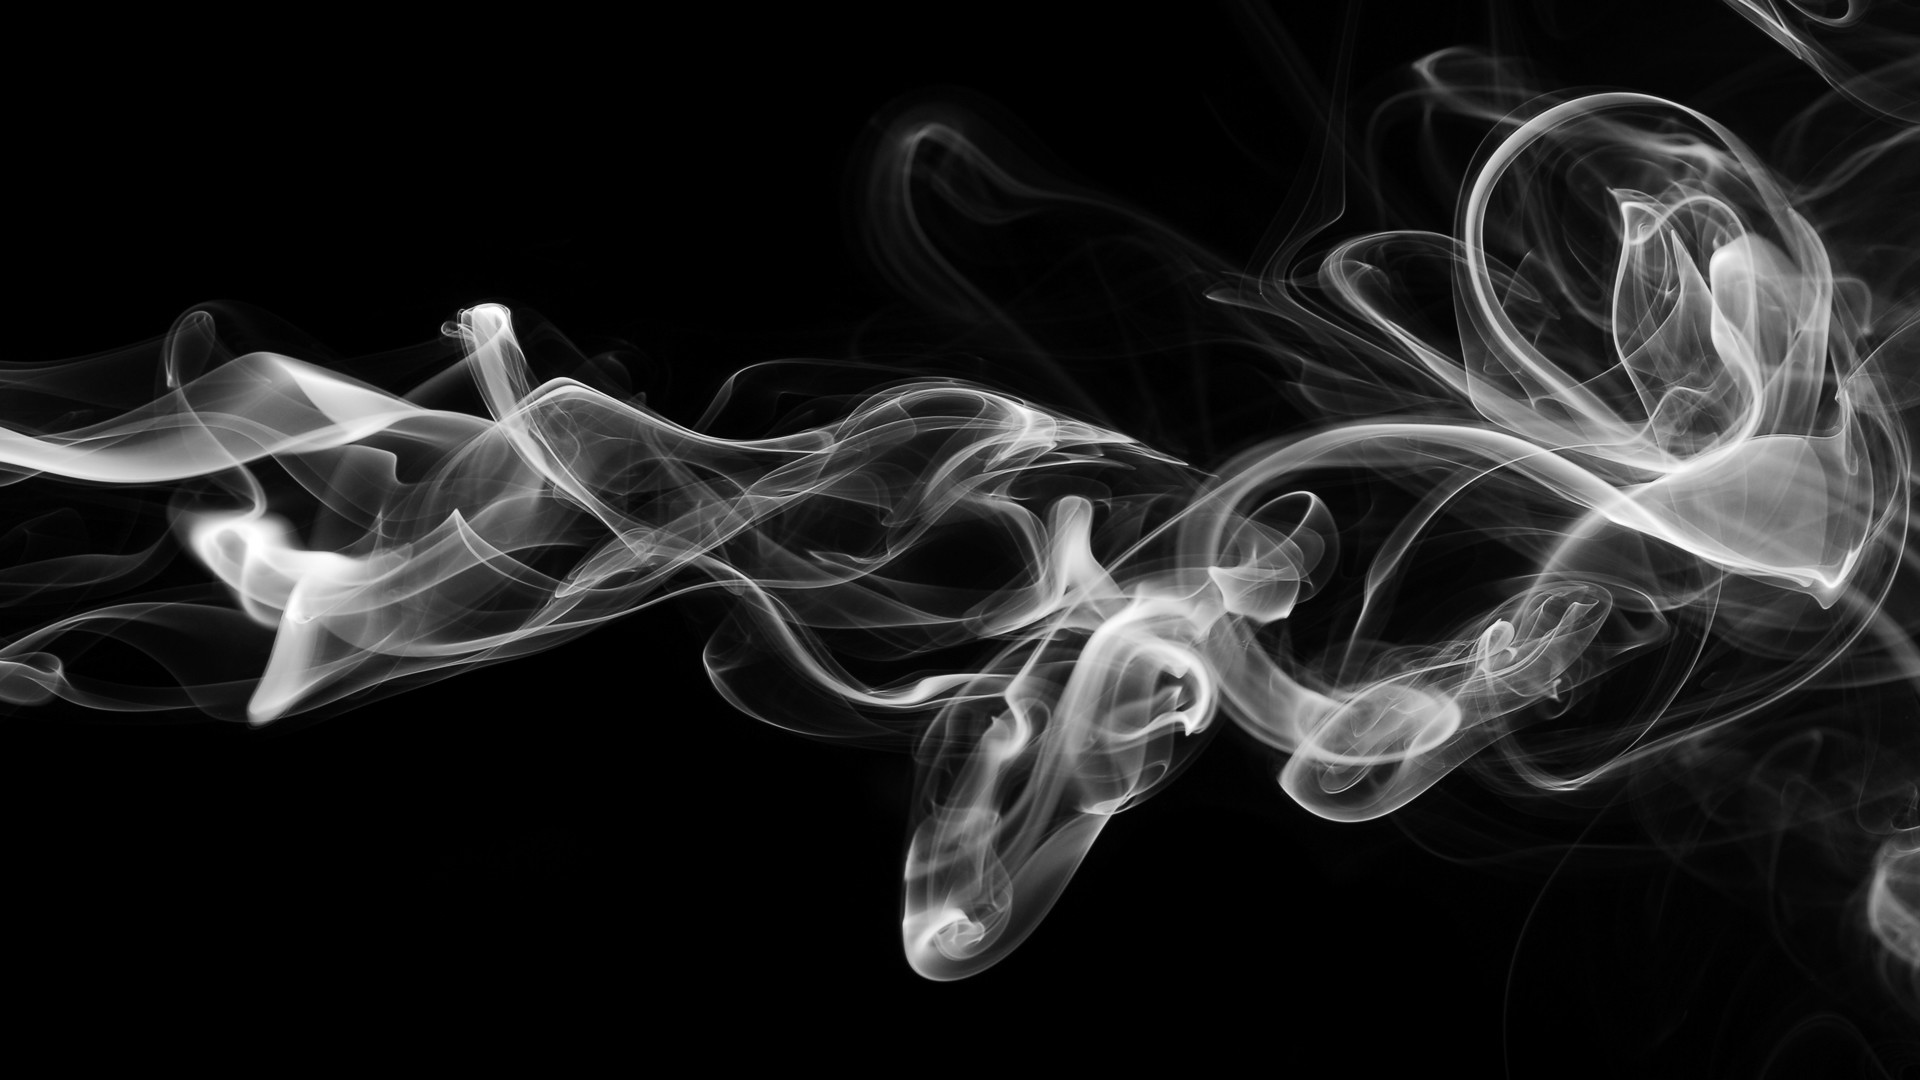 Cool Smoke Backgrounds (60+ Images